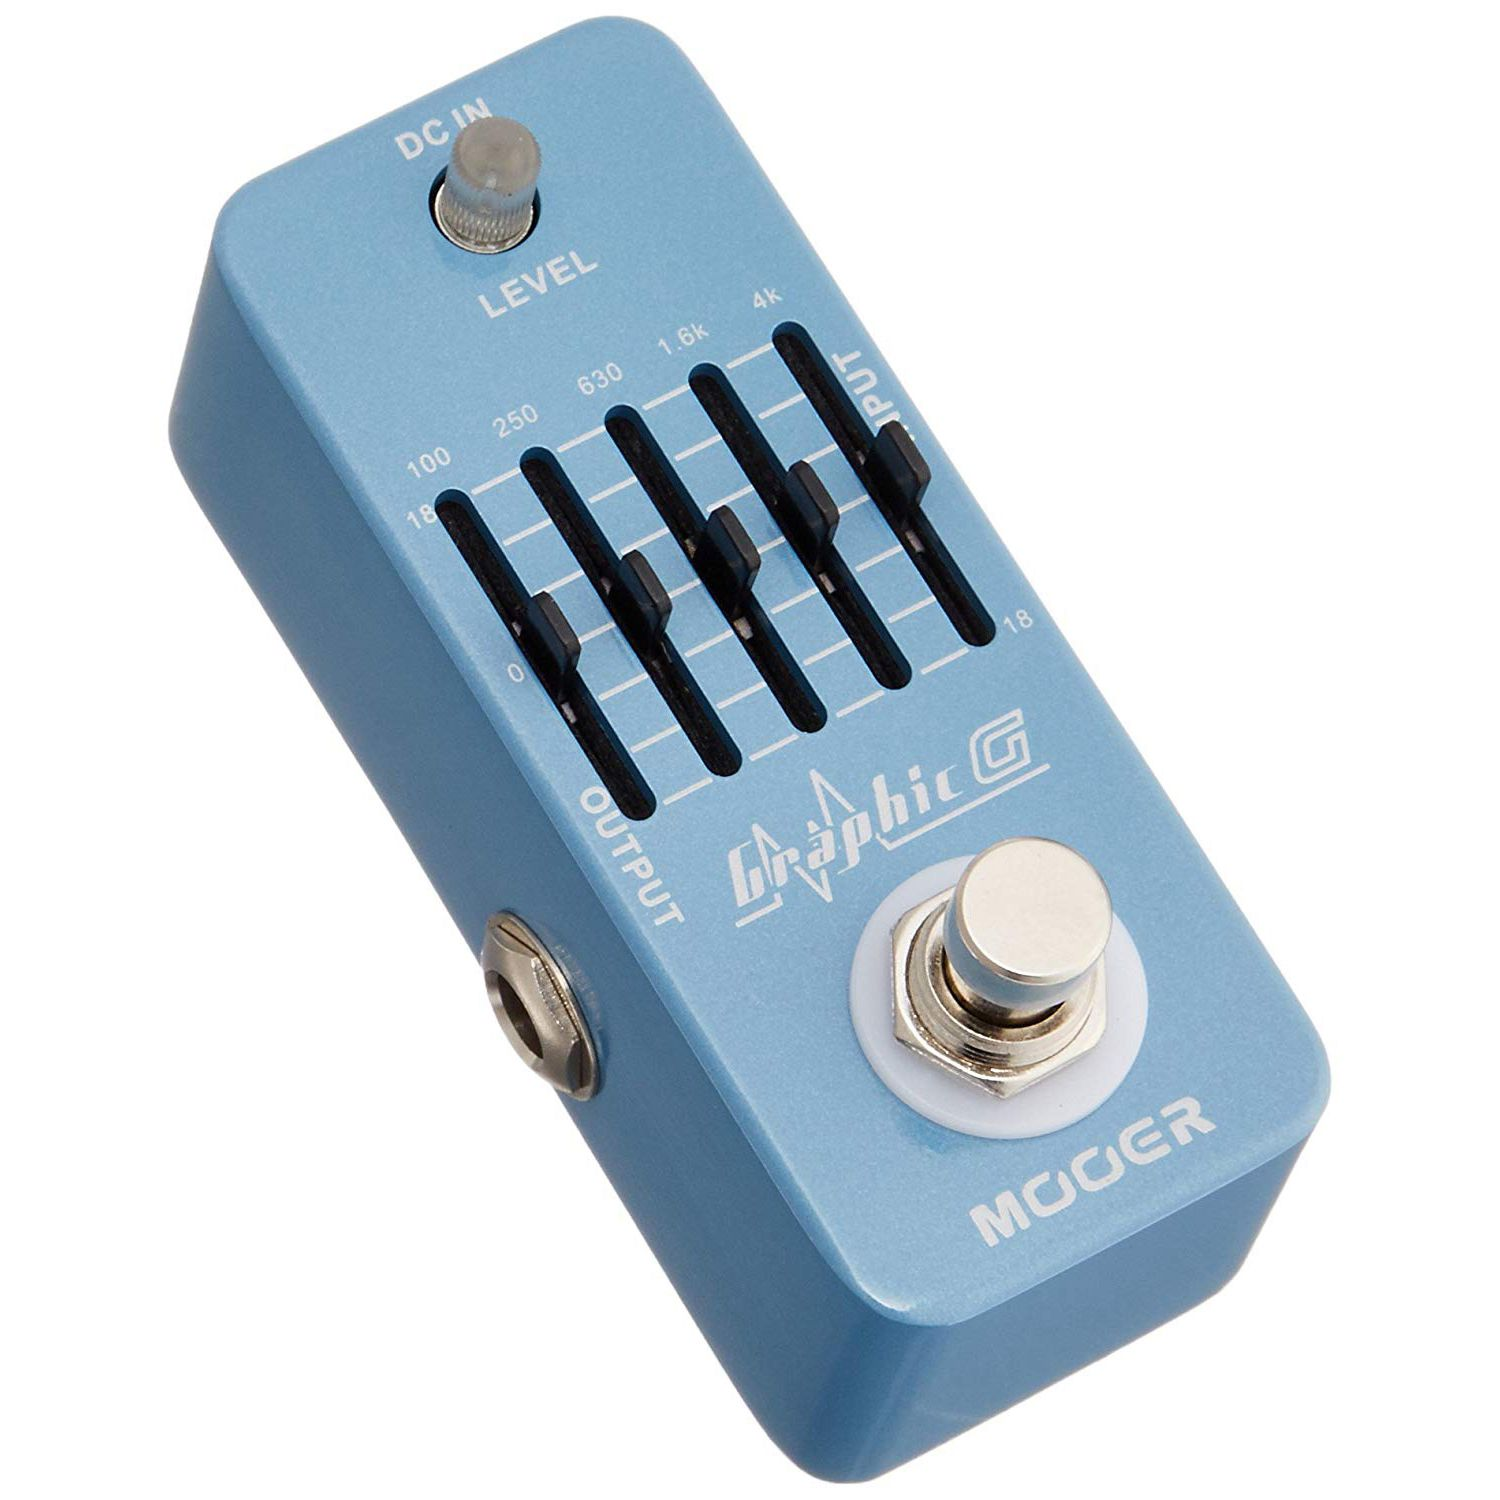 mooer graphic g mini guitar equalizer effect pedal 5 band eq true bypass full metal shell in. Black Bedroom Furniture Sets. Home Design Ideas